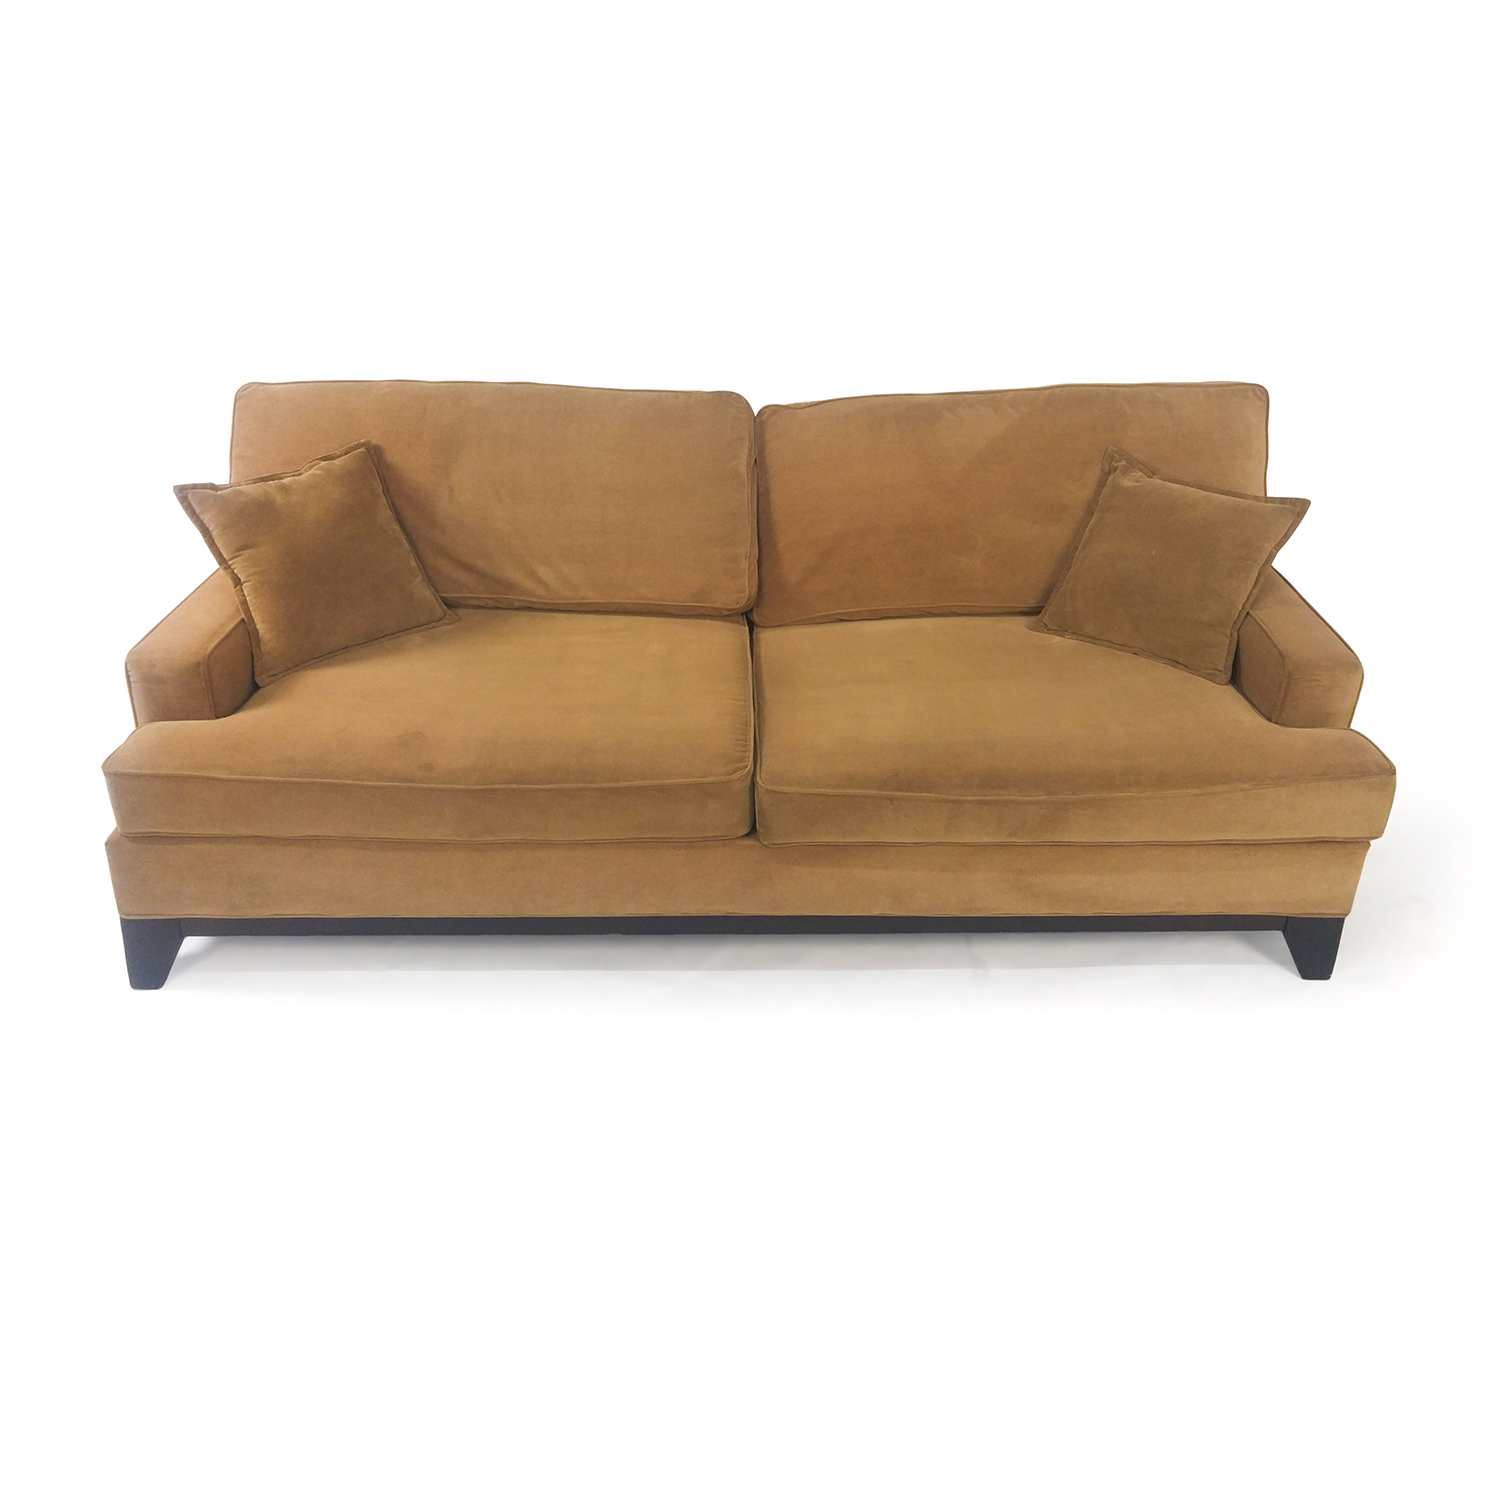 Oversized Sofa price